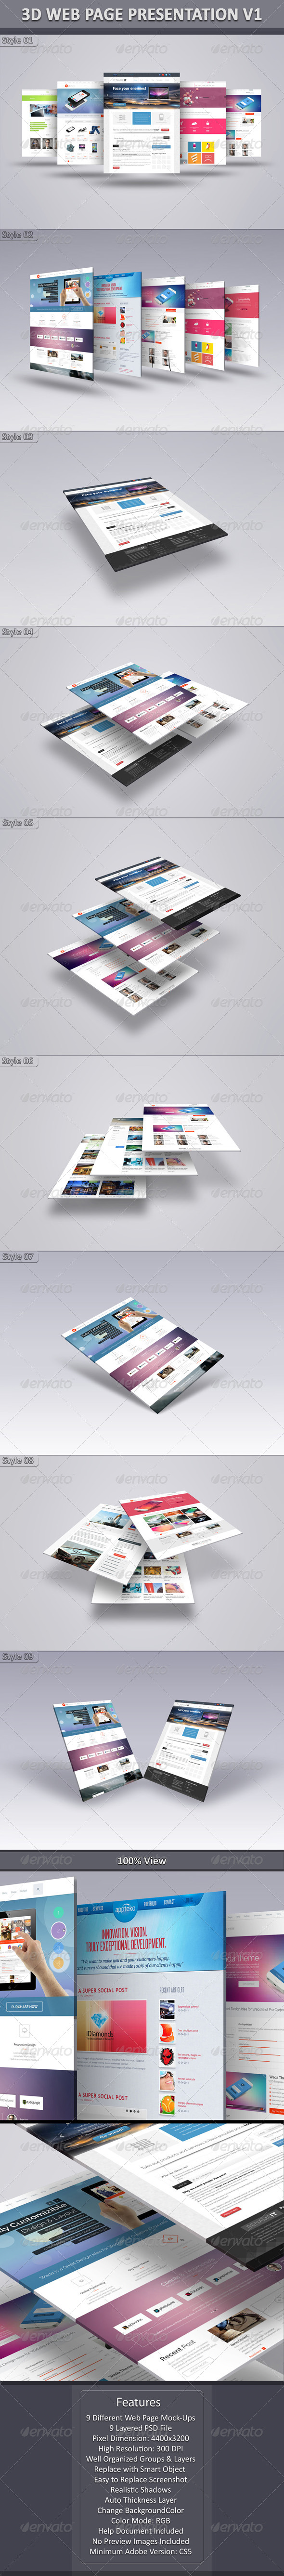 GraphicRiver 3D Web Page Presentation V1 6342693